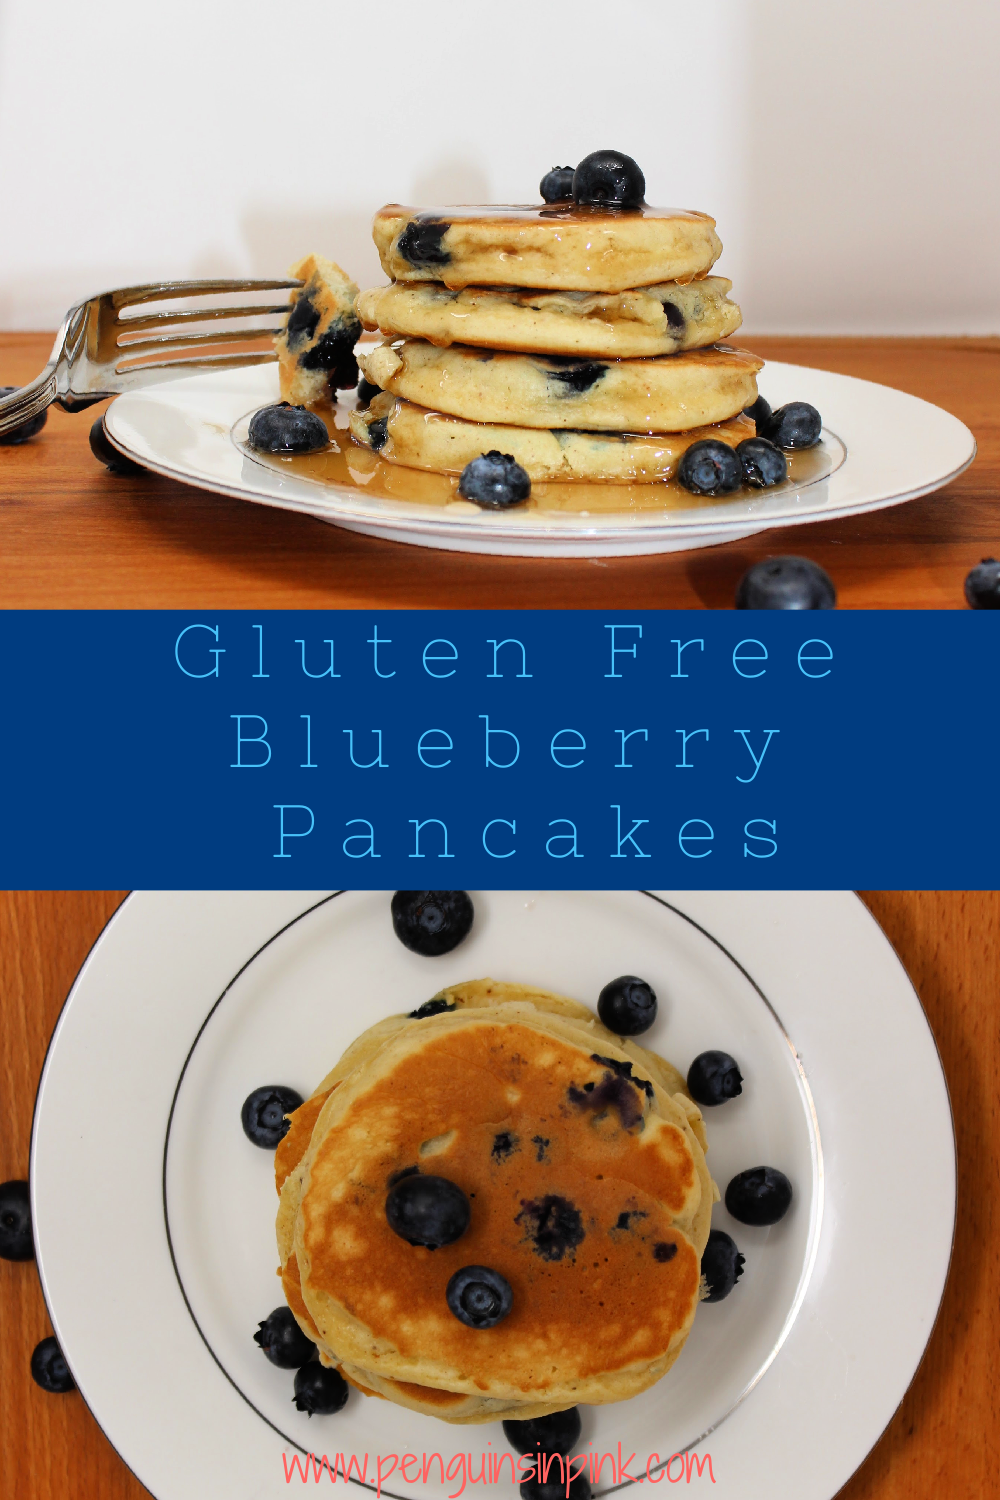 Light and fluffy gluten free blueberry pancakes made with almond milk, coconut oil, and gluten free flour. Perfect for Saturday morning breakfasts or anytime. They also freeze and reheat very well.